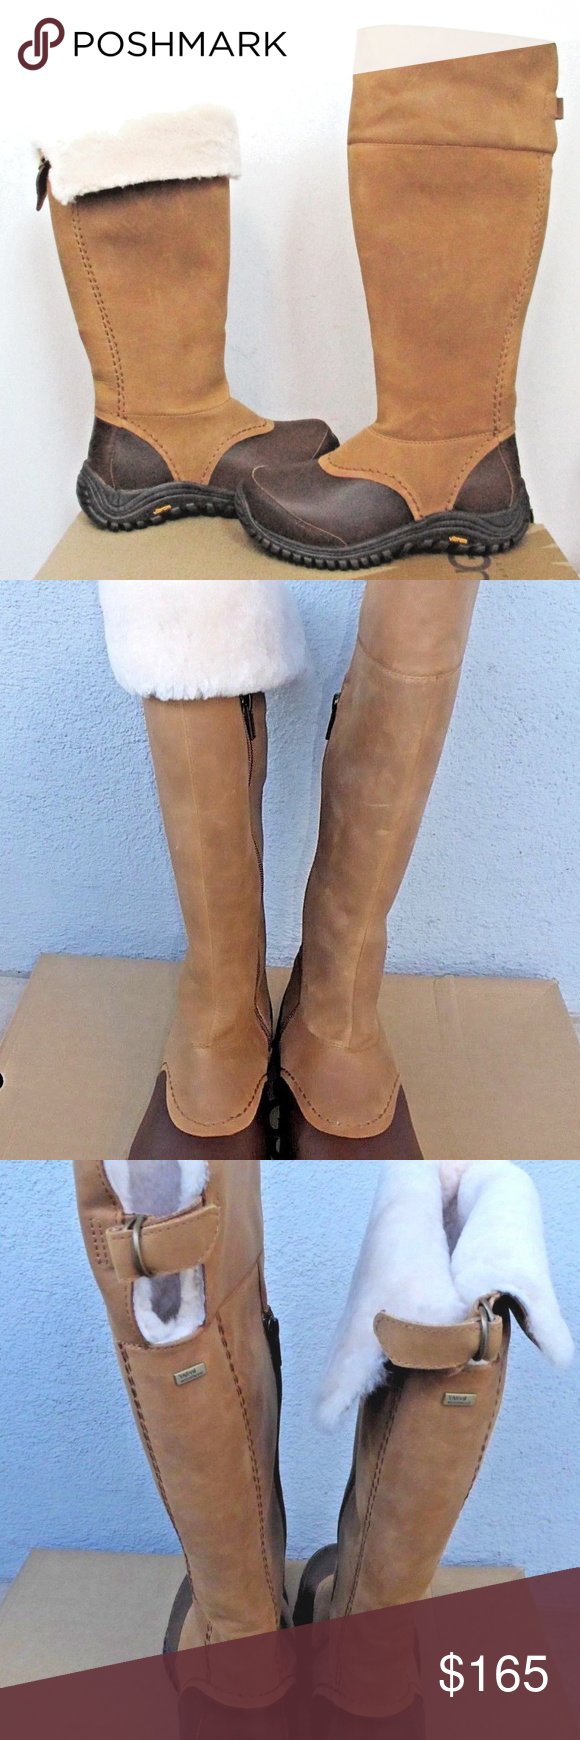 2c362a7cb8c New UGG Miko Waterproof Leather Winter Boots UGG Womens' Miko Boots ...